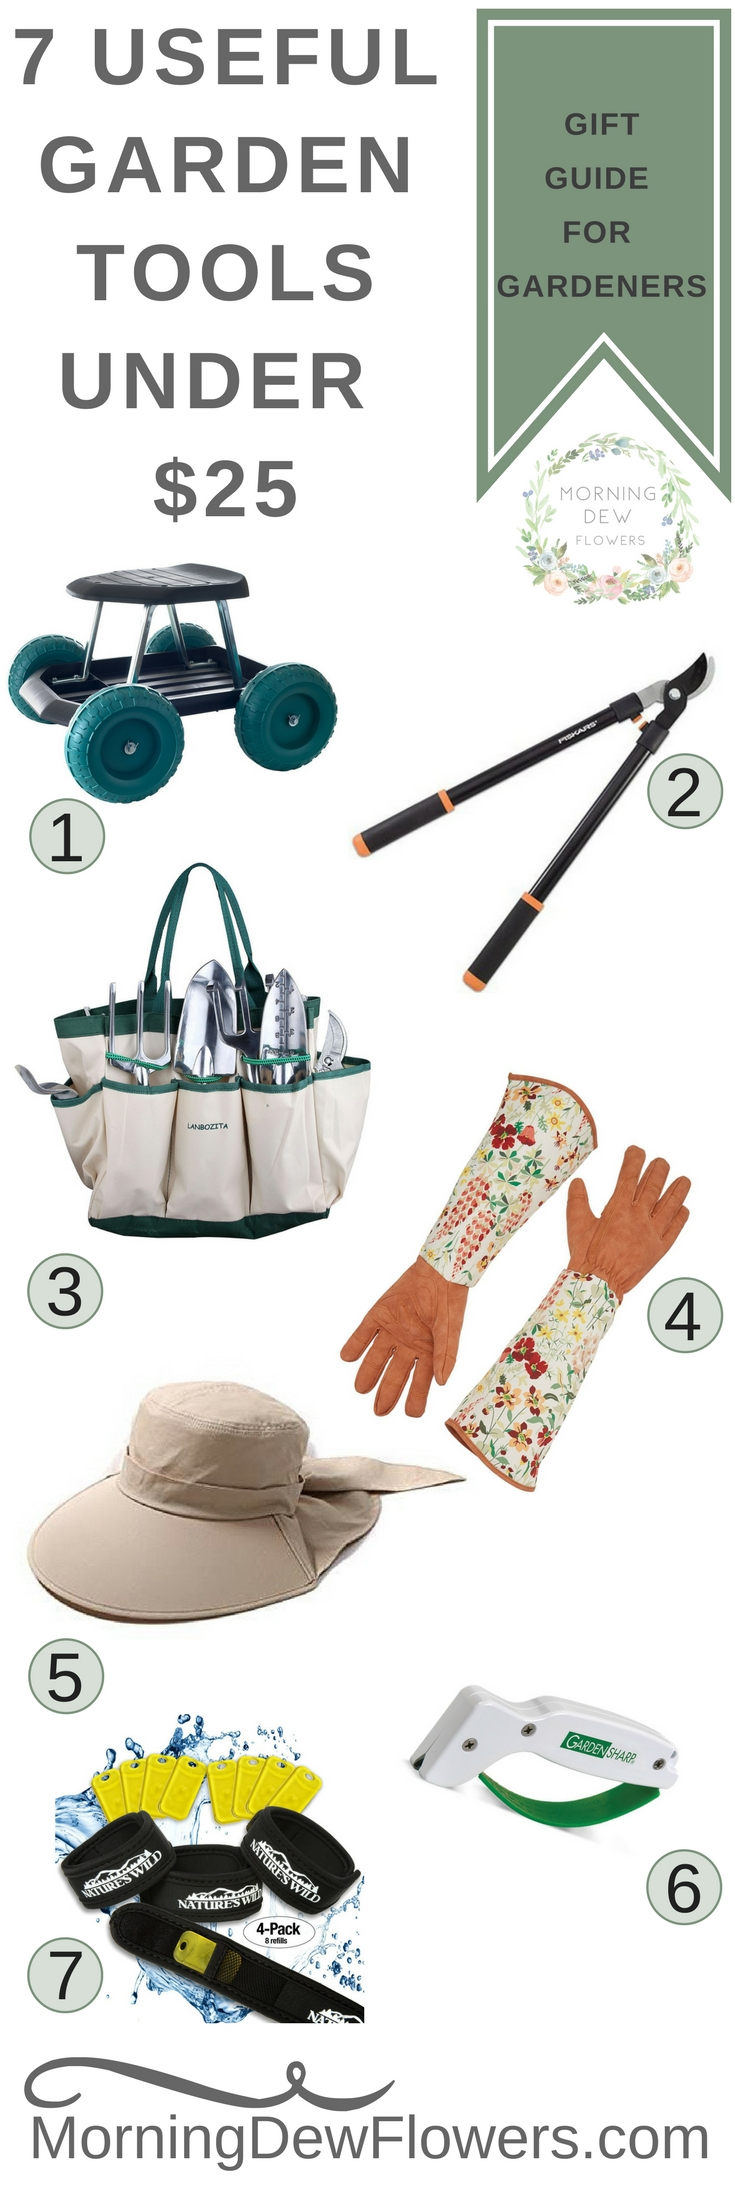 7 Useful Garden Tools Under $25 Gift Guide